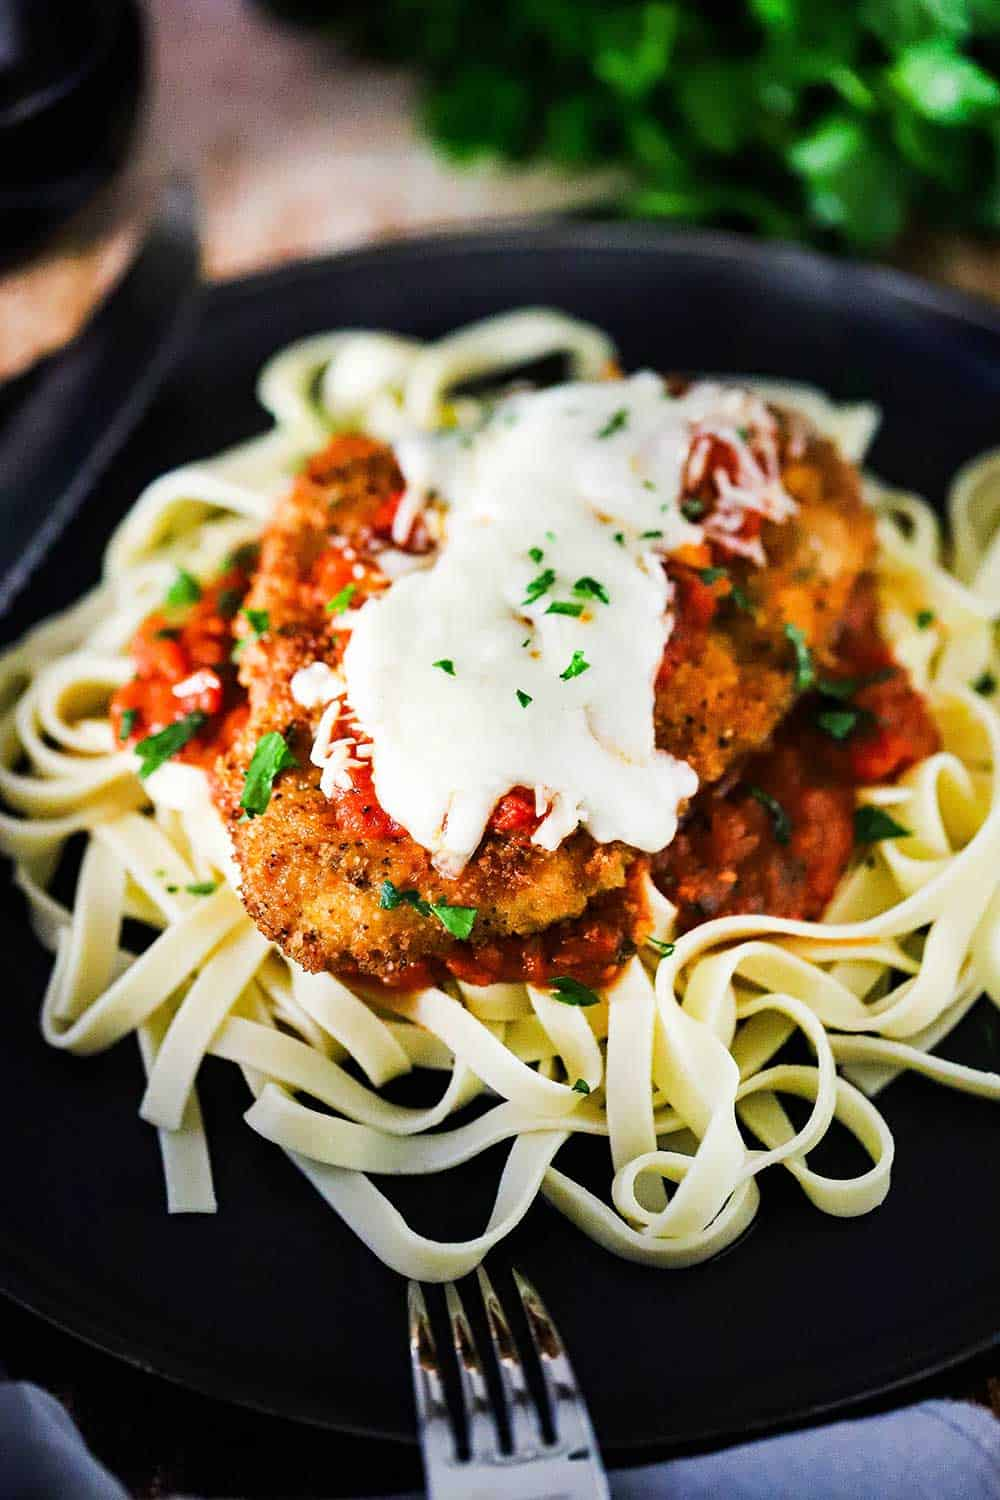 A black dinner plate filled with a pile of cooked fettuccine topped with a chicken parmesan cutlet topped with melted mozzarella cheese.